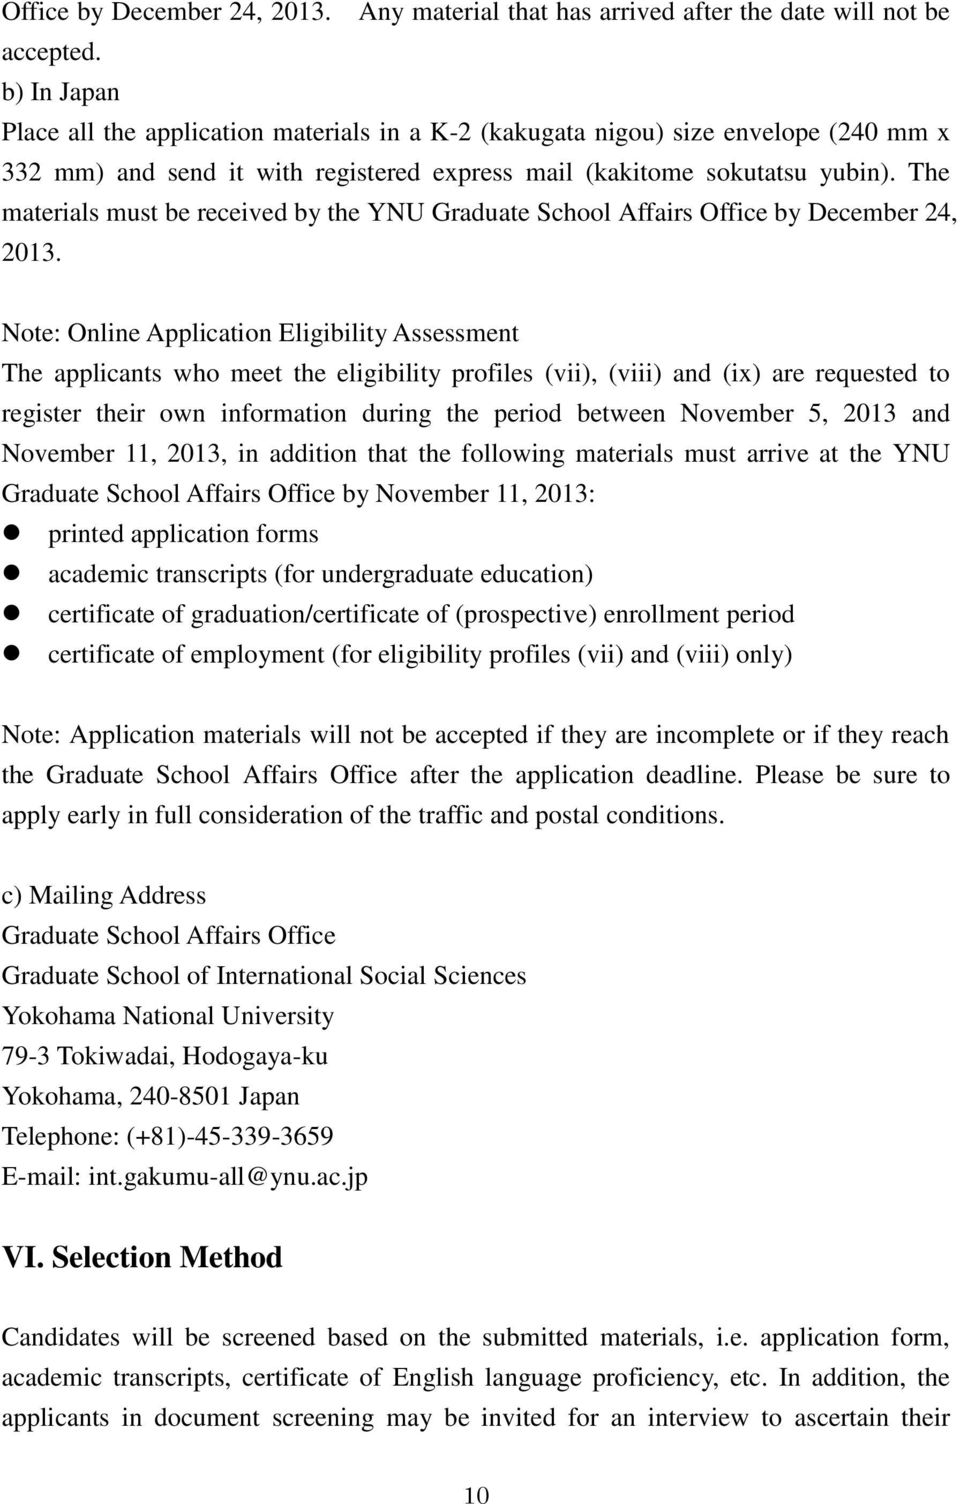 The materials must be received by the YNU Graduate School Affairs Office by December 24, 2013.